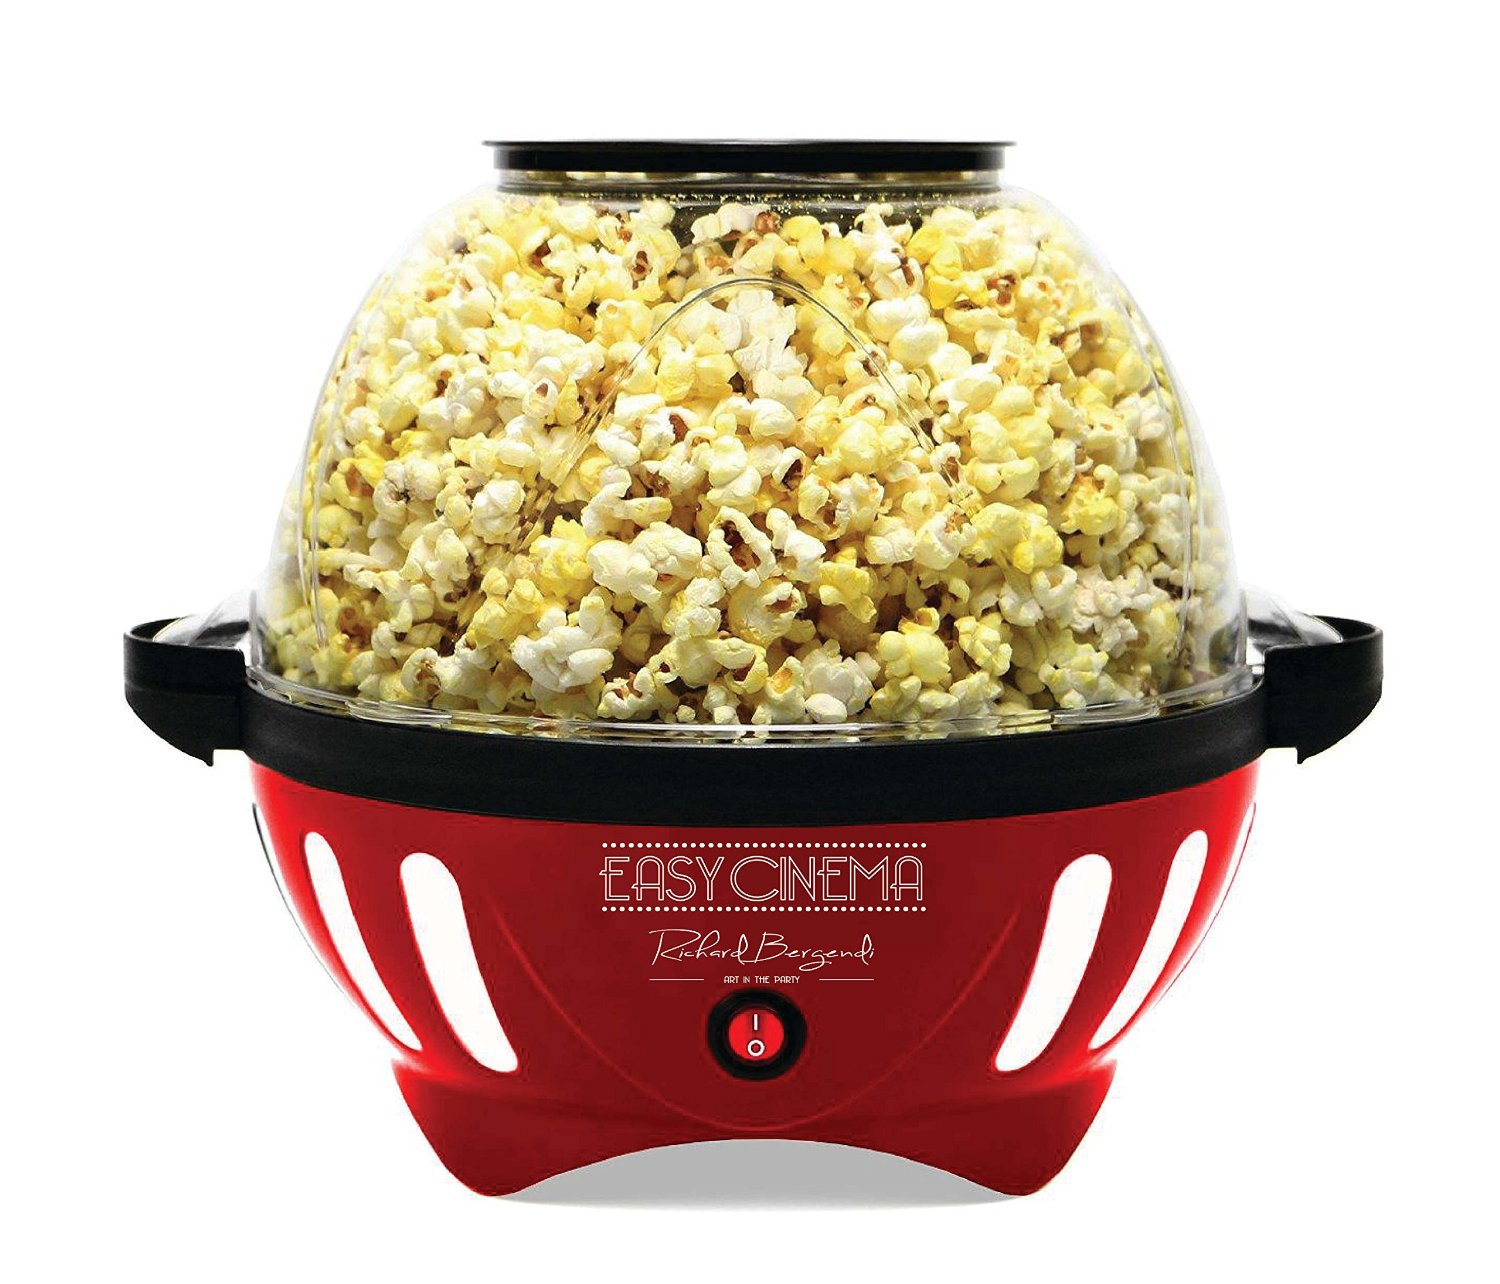 la machine pop corn gadgets et jouets de cuisine. Black Bedroom Furniture Sets. Home Design Ideas